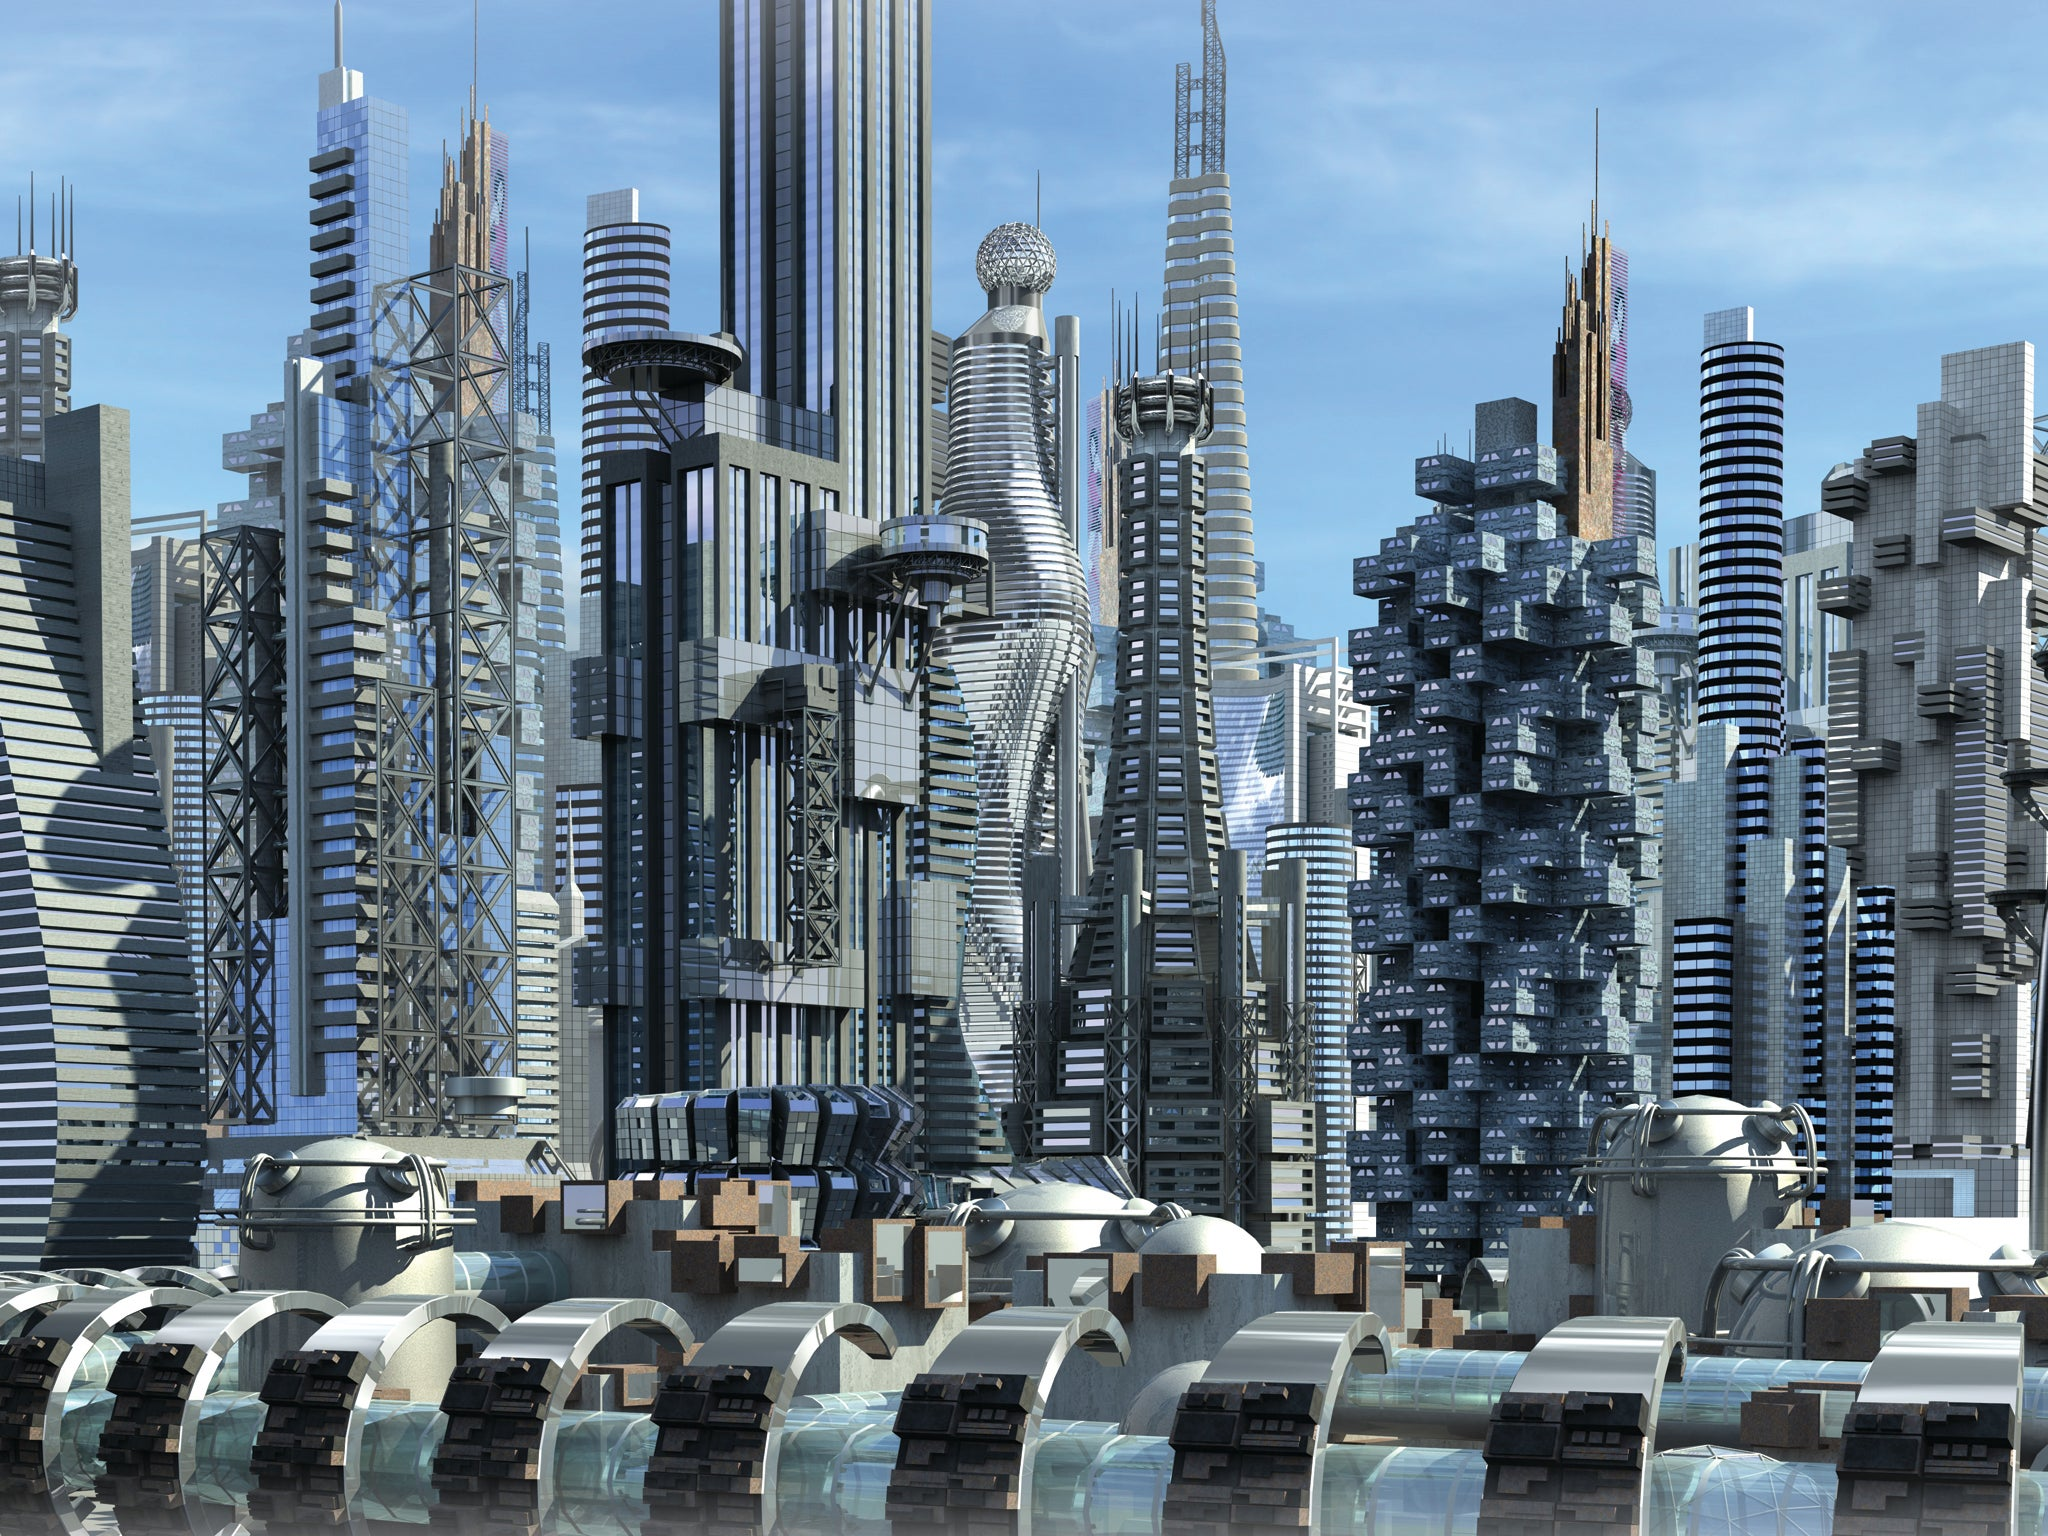 Robot Cities: Three Urban Prototypes That Could